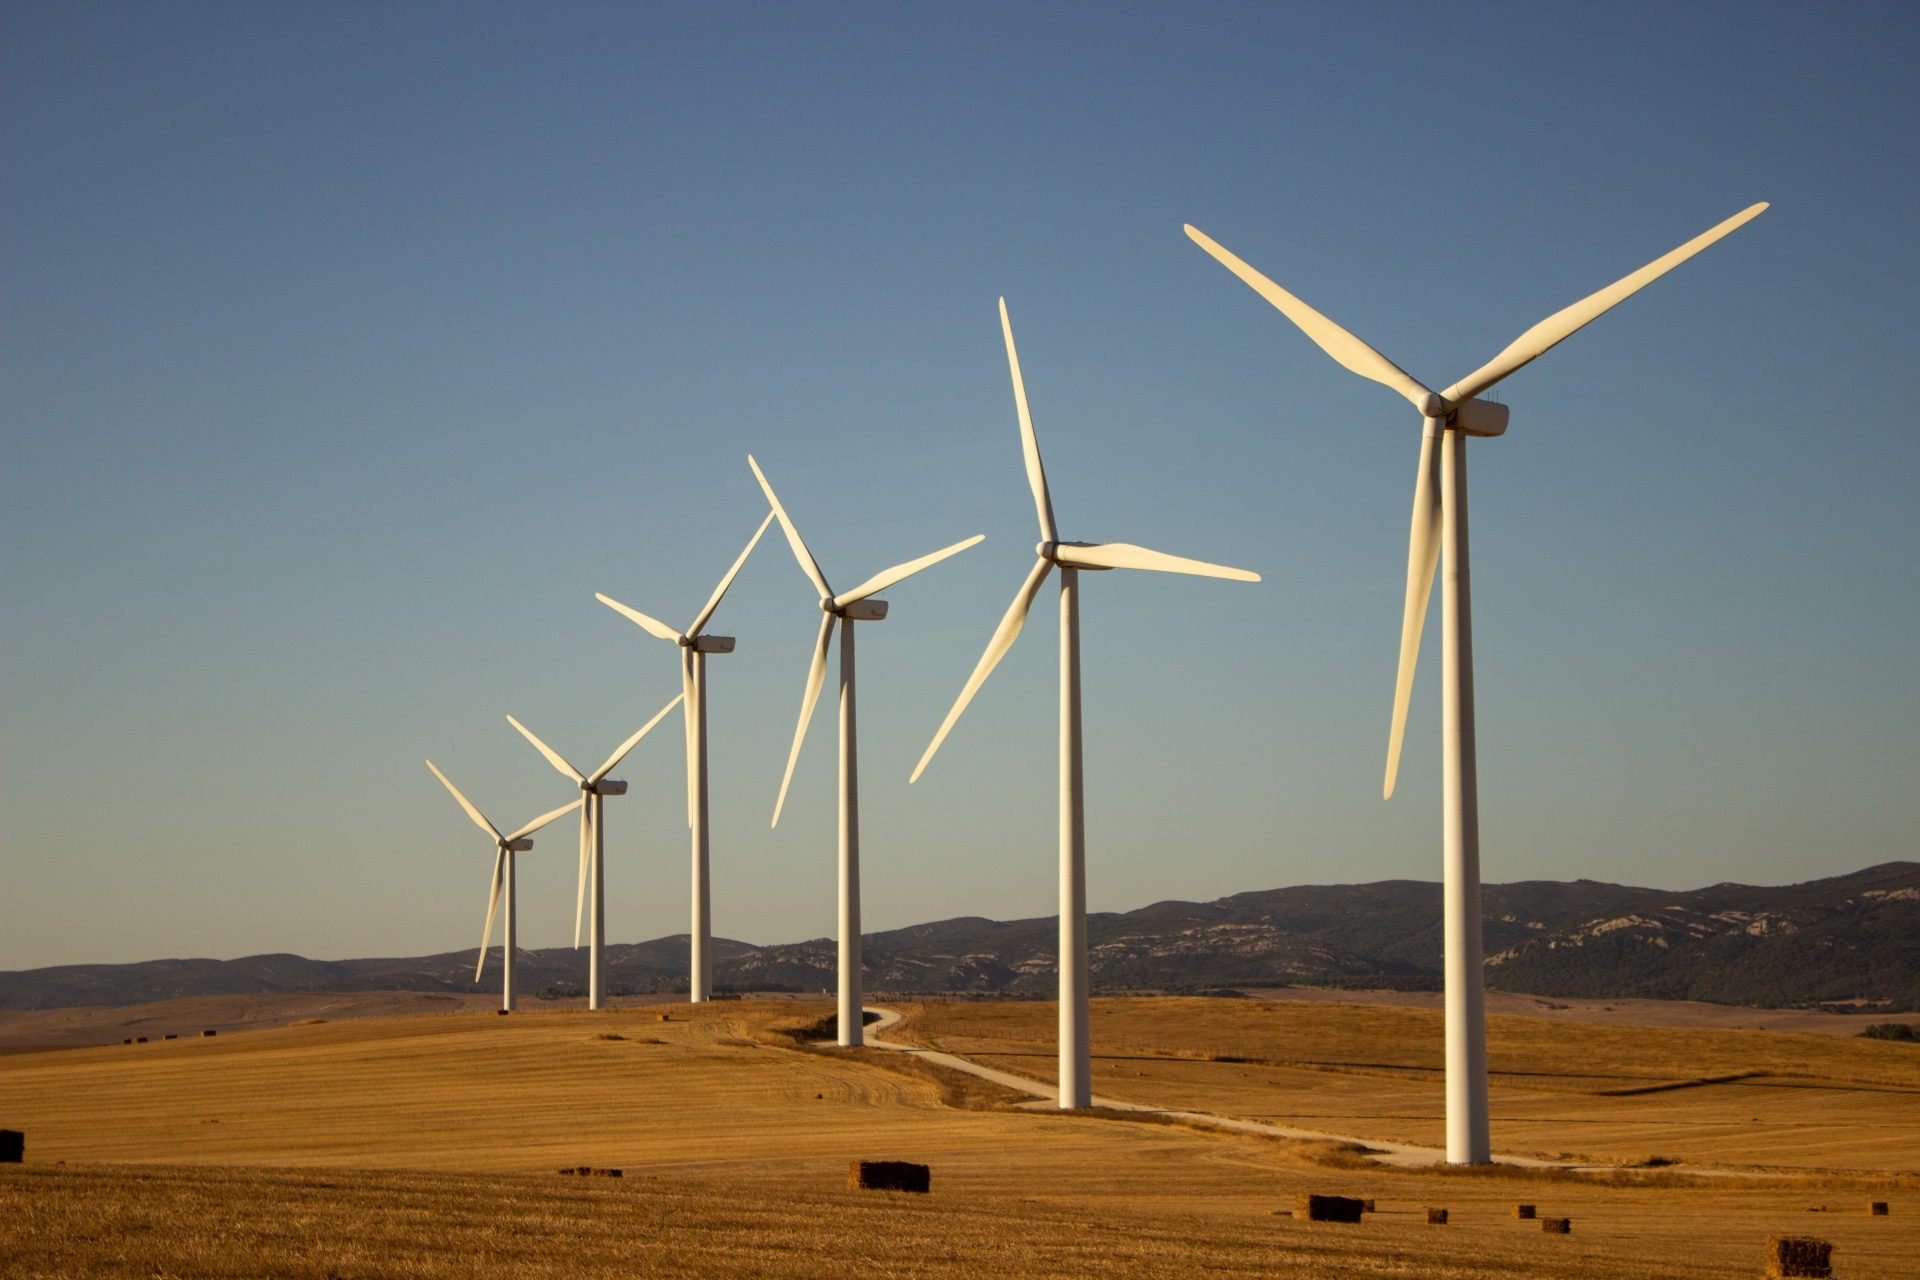 Mitsubishi to build onshore wind farm in Laos to sell electricity to Vietnam